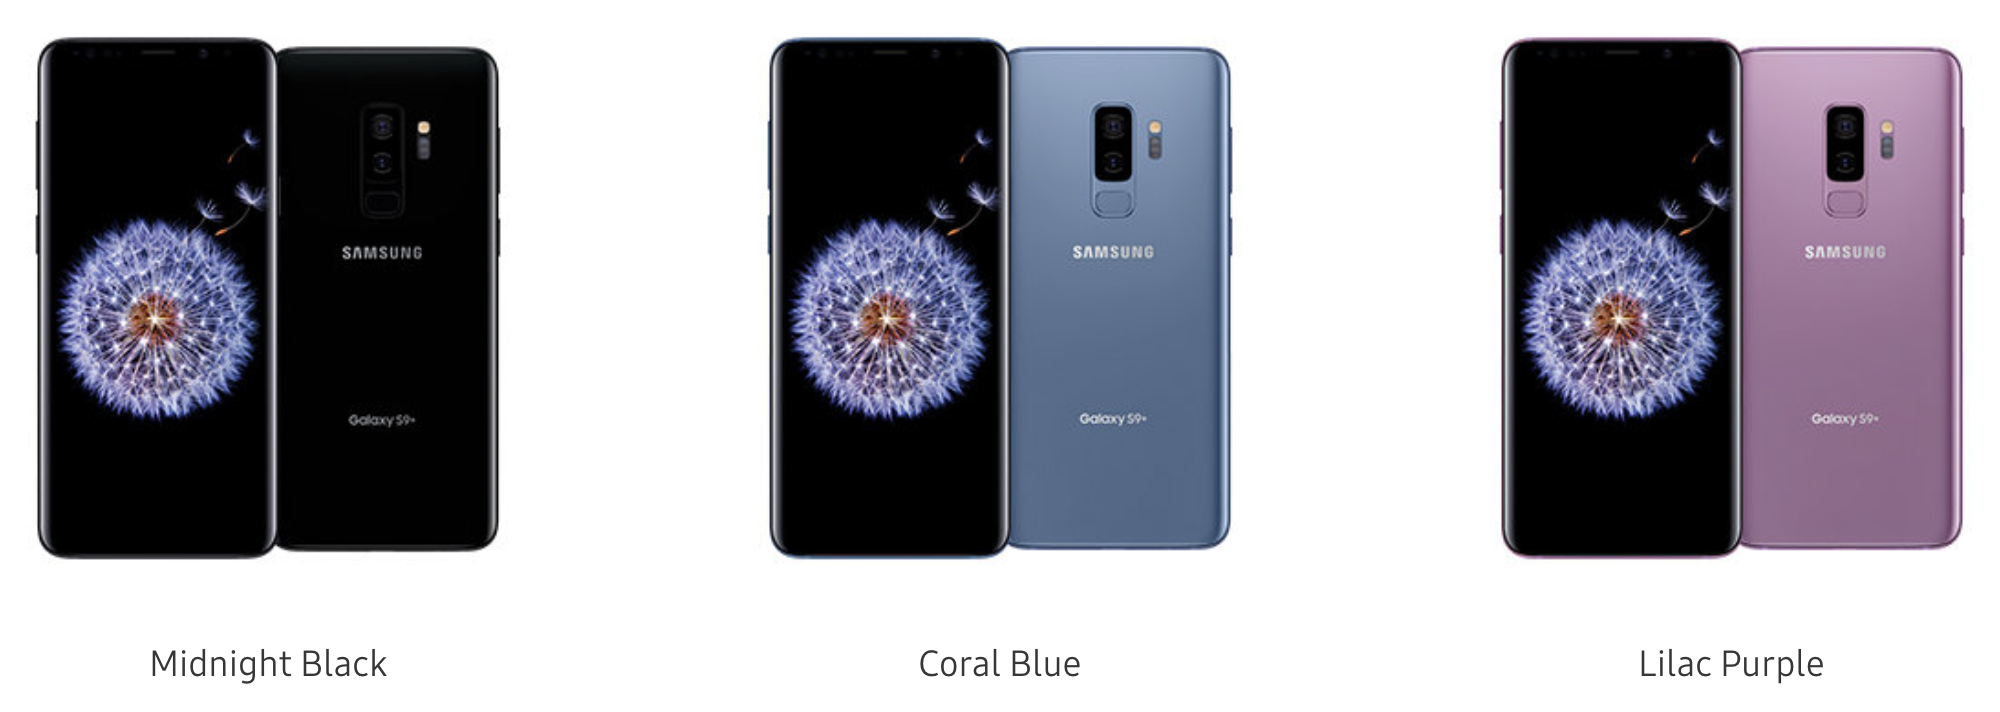 s9 plus colors